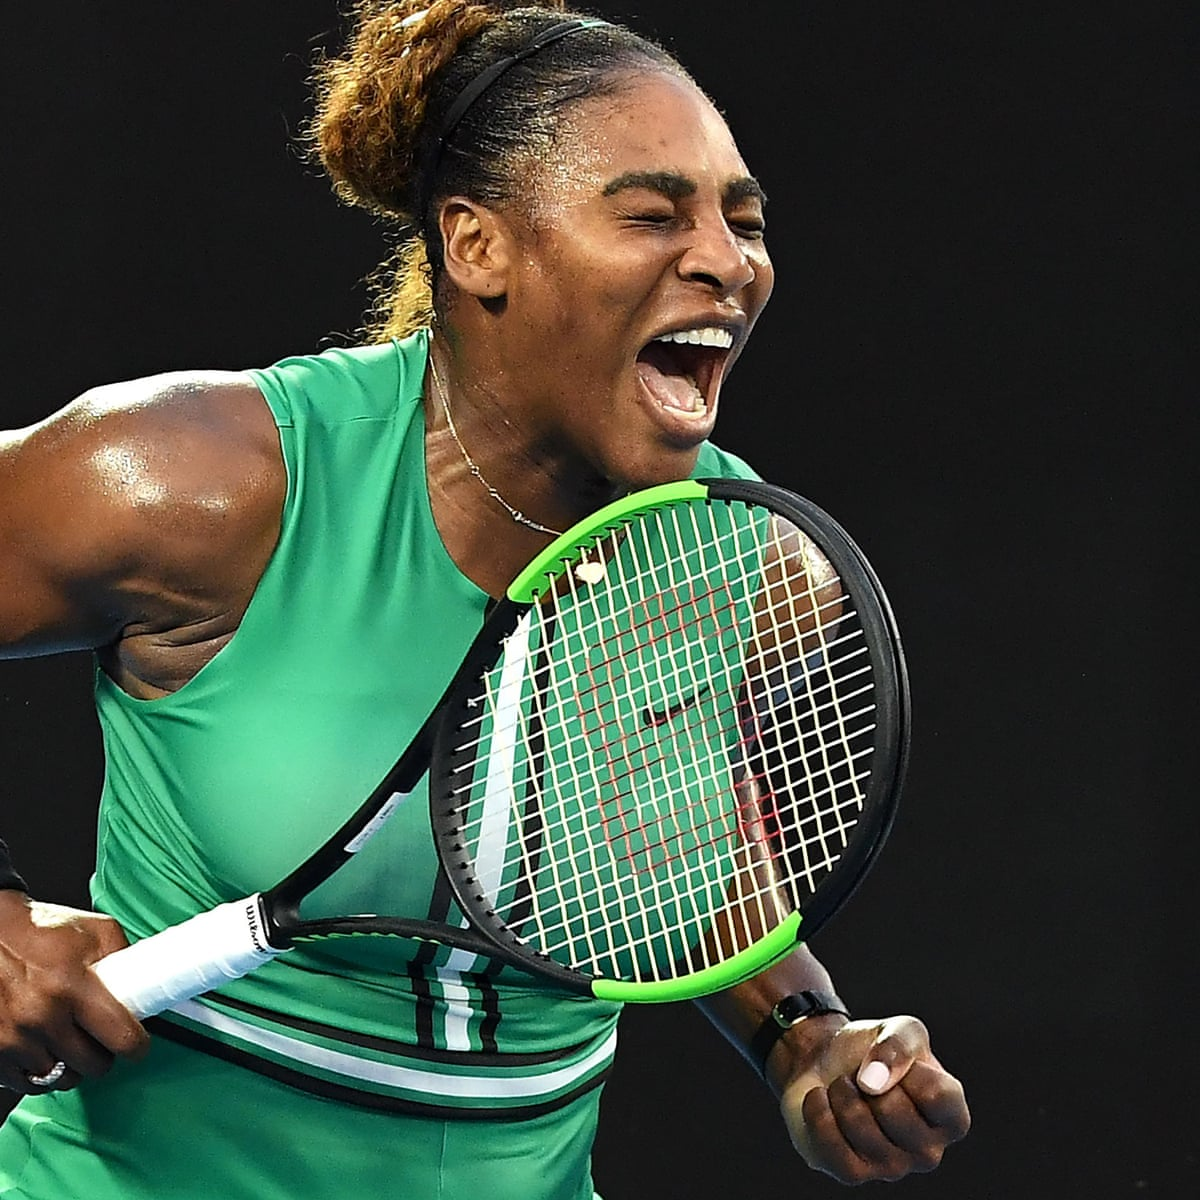 Hot Pictures Of Serena Williams photo 13